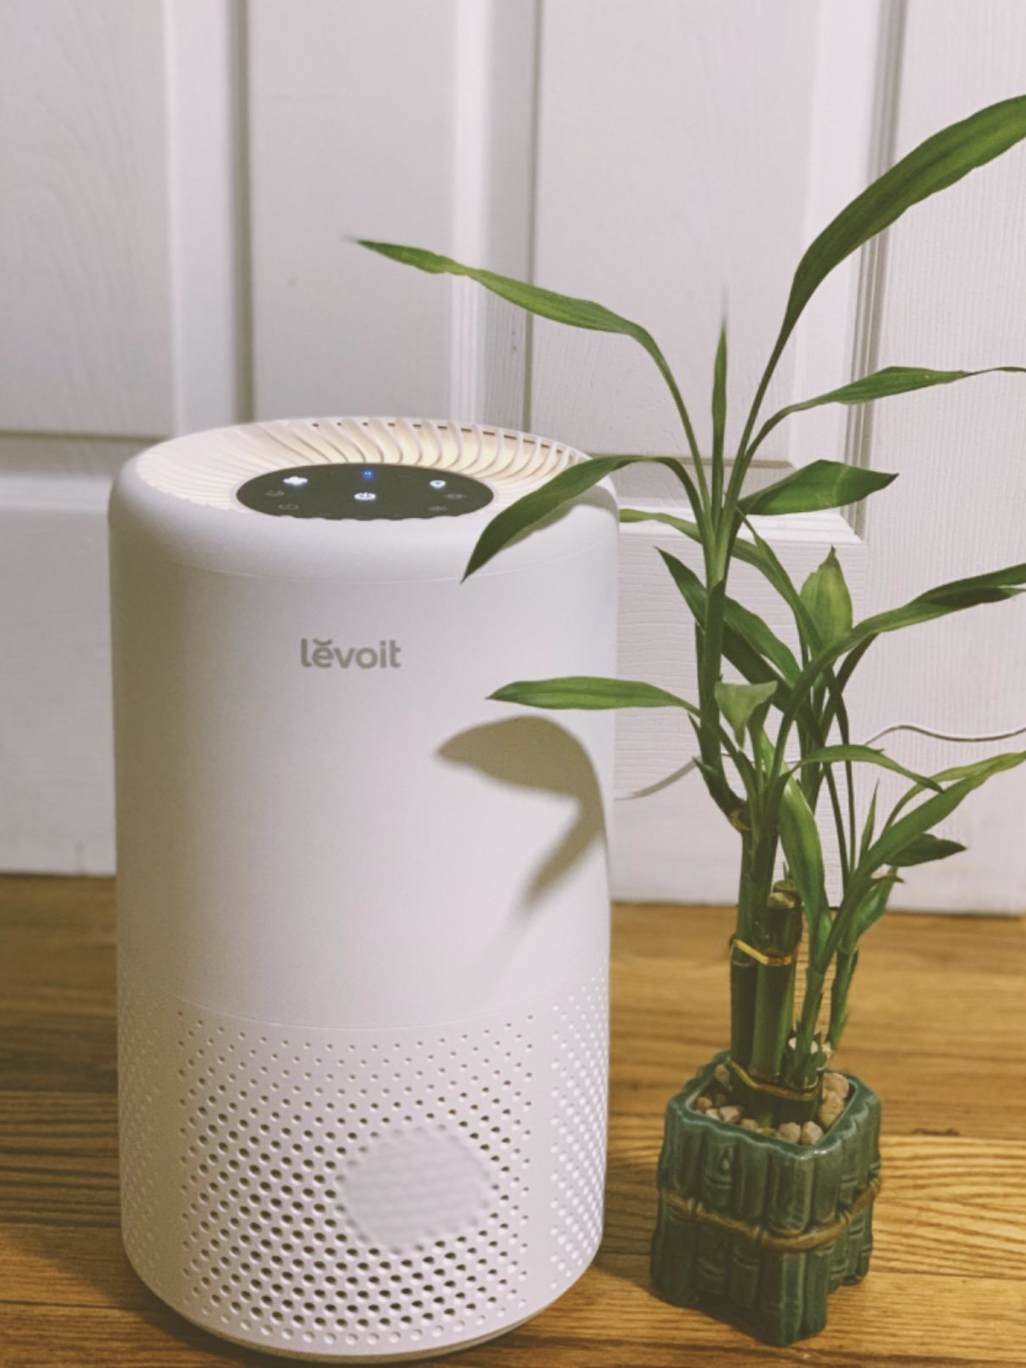 Reviewer image of Levoit air purifier on dresser